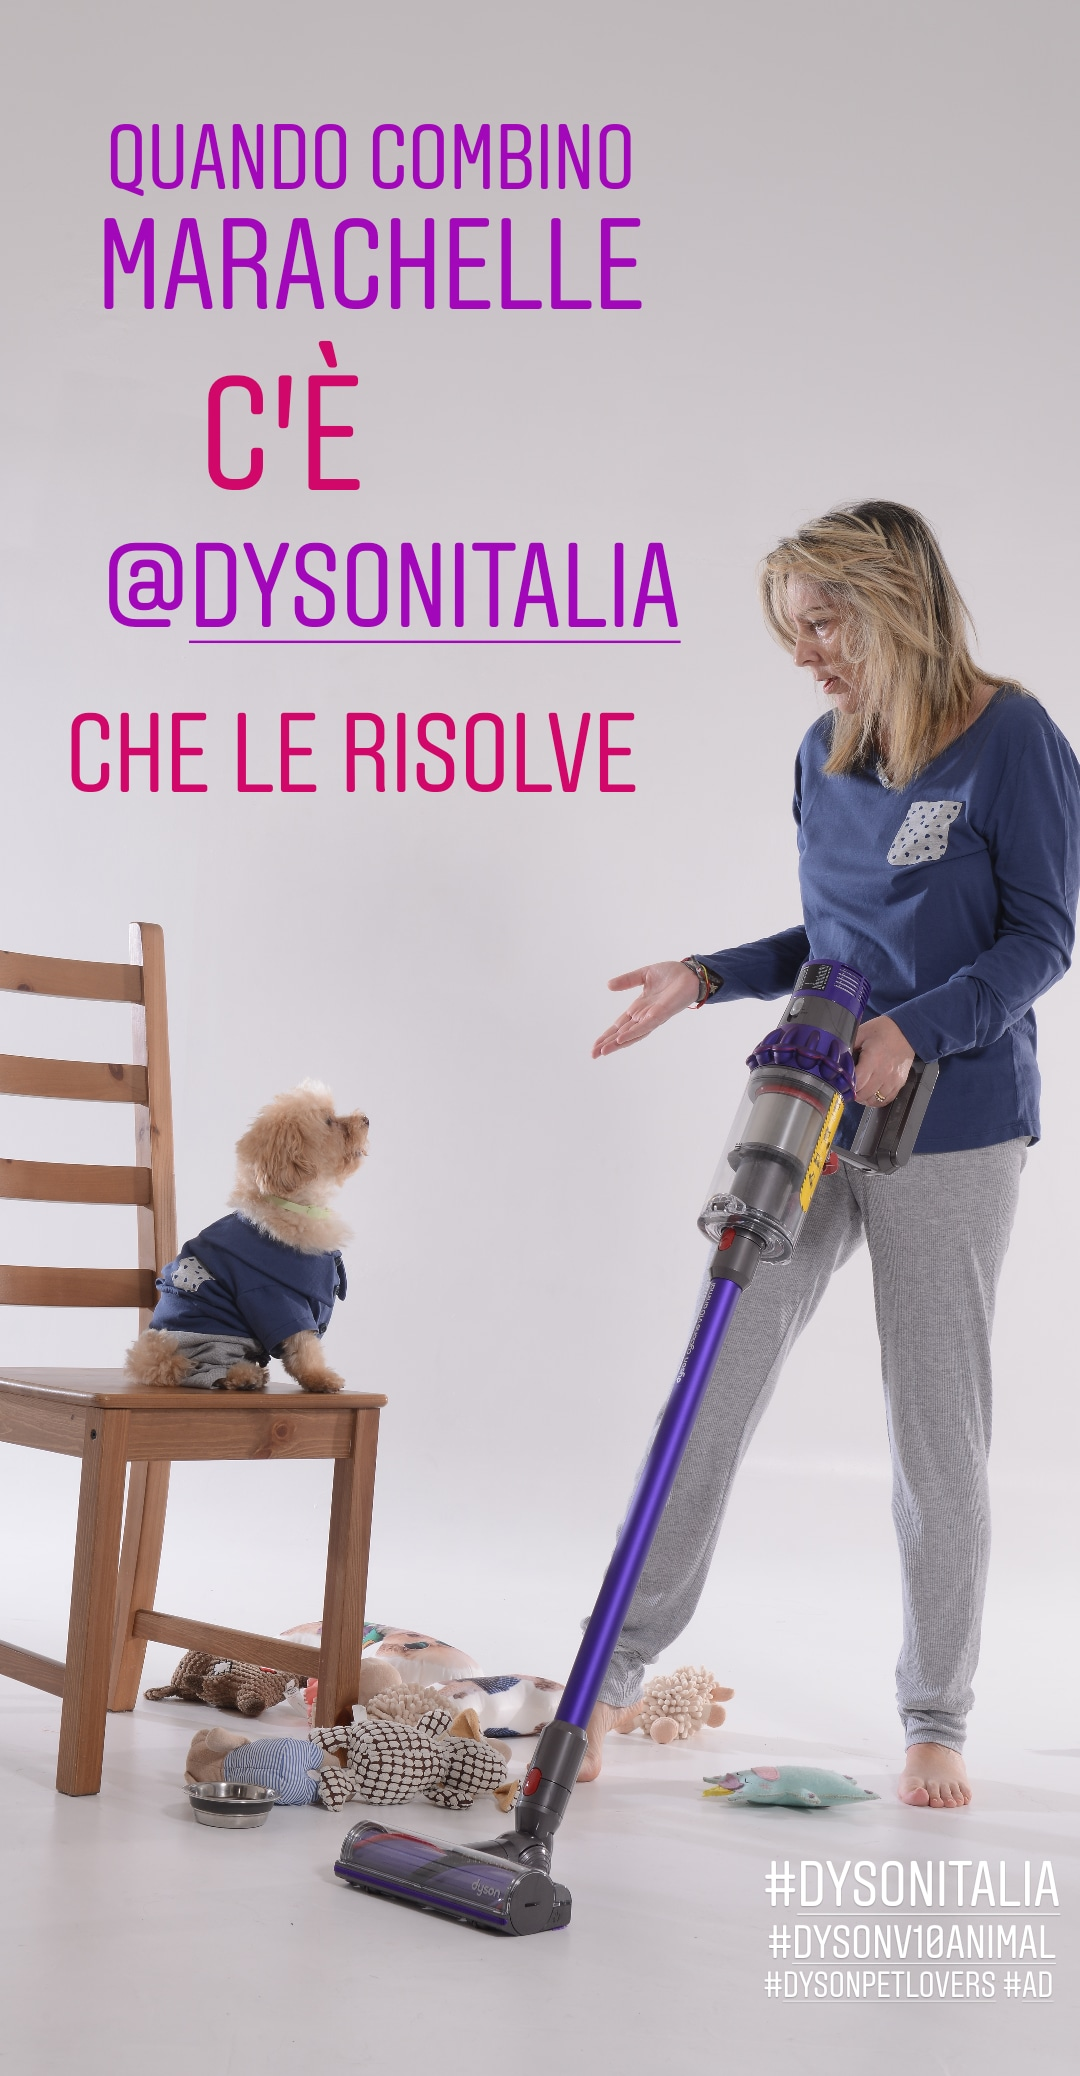 https://shop.dyson.it/aspirapolvere/senza-filo/dyson-cyclone-v10-animal-226379-01